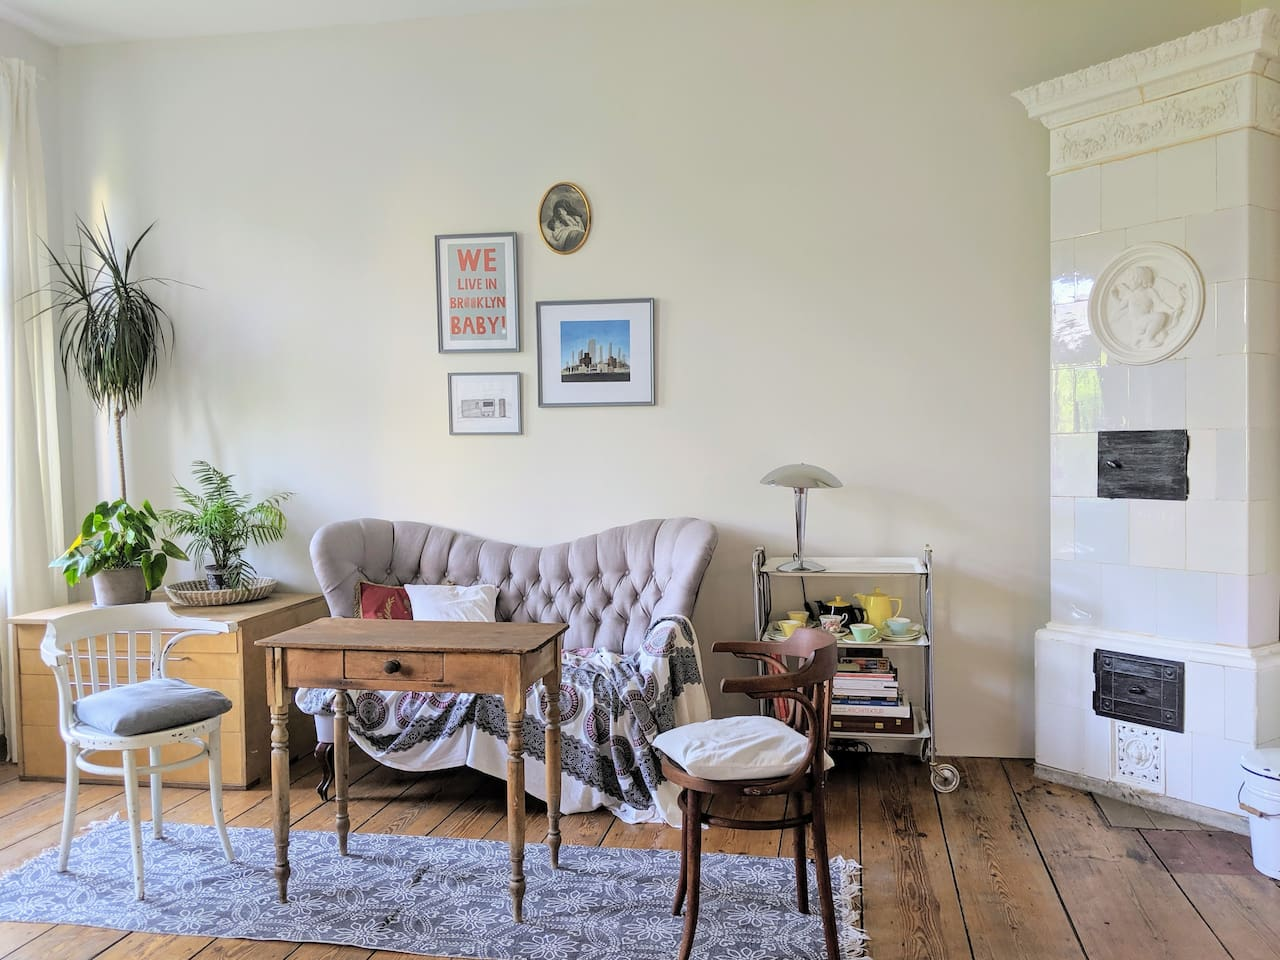 Cozy full apartment in the heart of Bergmannkiez, with an eat in kitchen, bedroom, living room and shower bathroom. Quiet and airy. Living room (pictured) features an old wood burning oven and eclectic style.